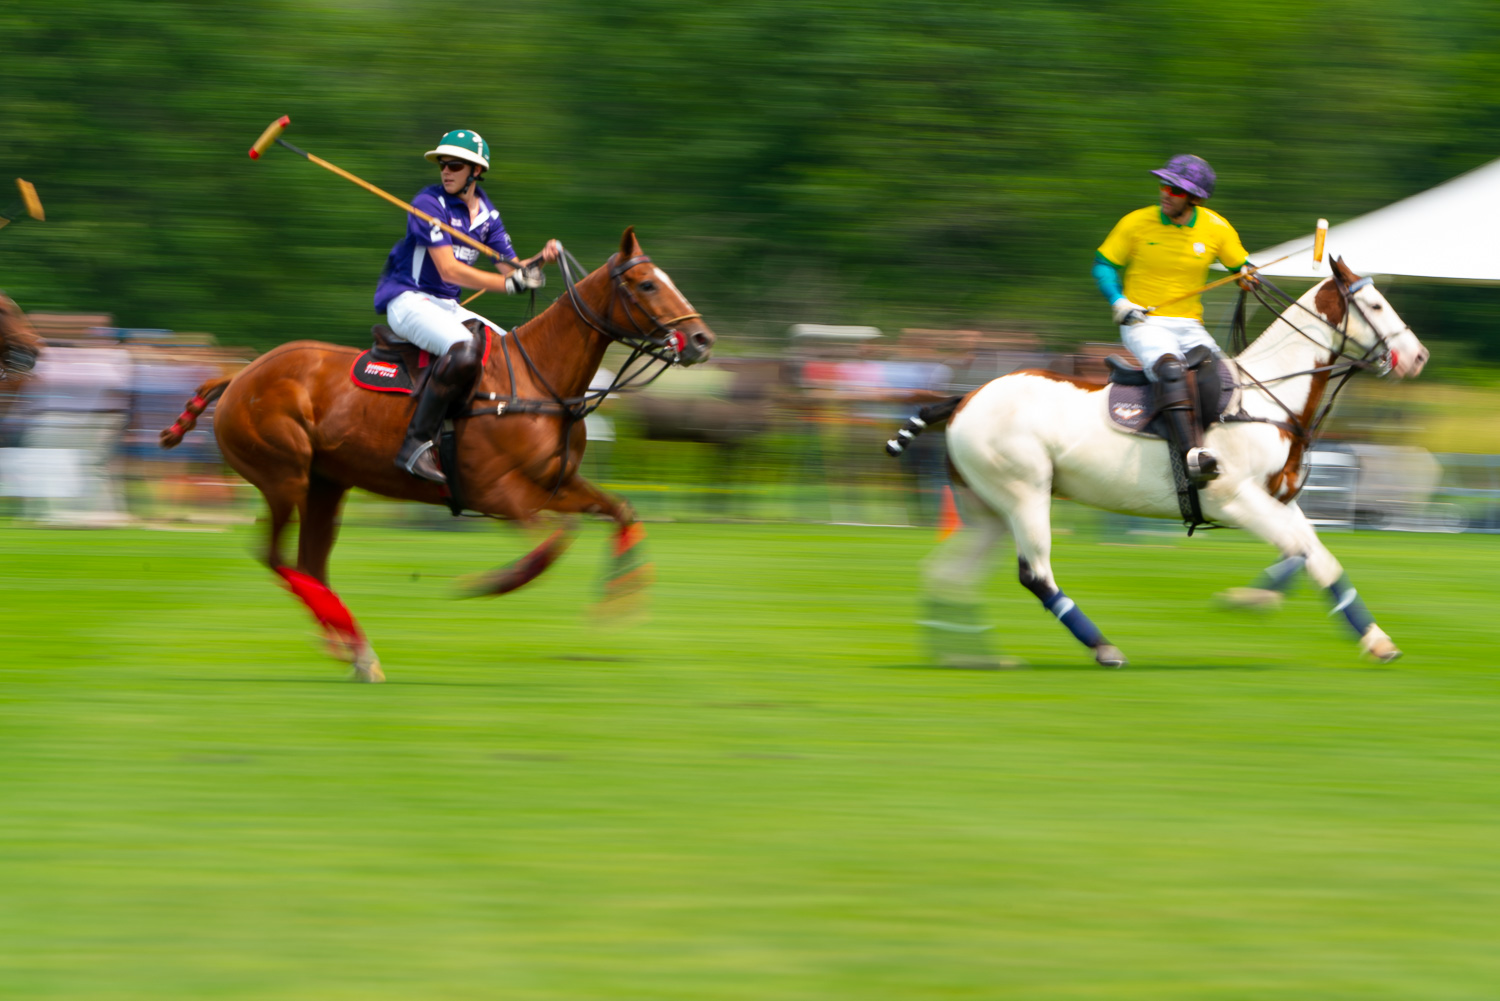 Polo is a contact sport., Polo is no longer a boys club. Women and men mix it up.at the mashomack polo club in pine plains.jpg